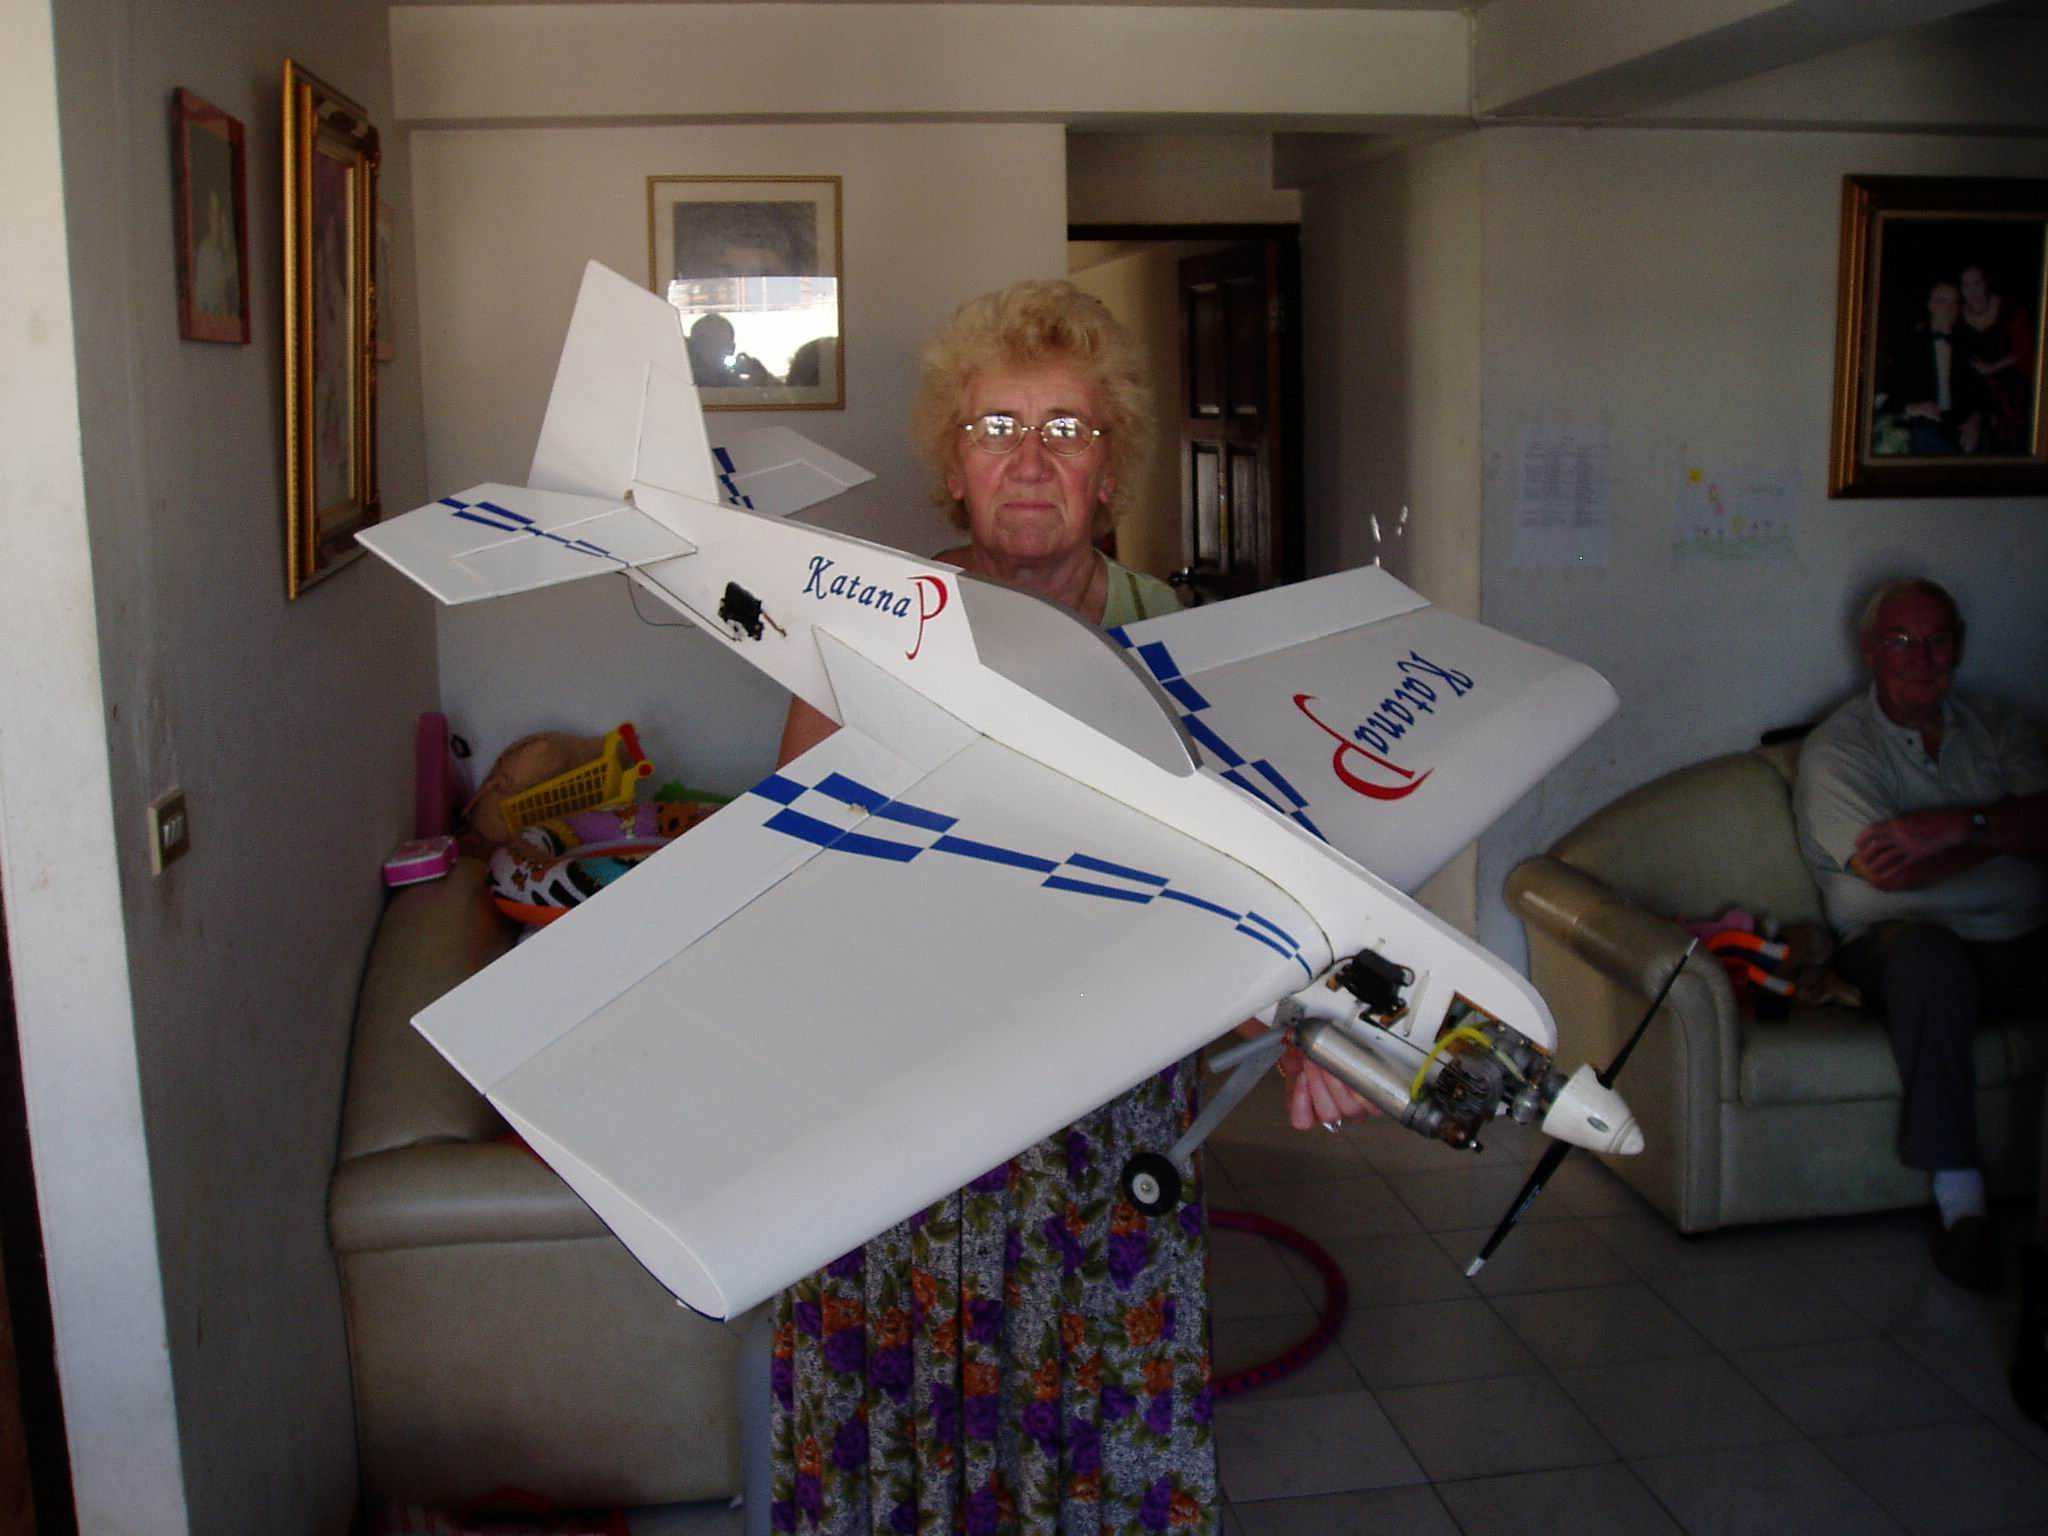 Where can I find Profile RC Plane Plans? | FliteTest Forum